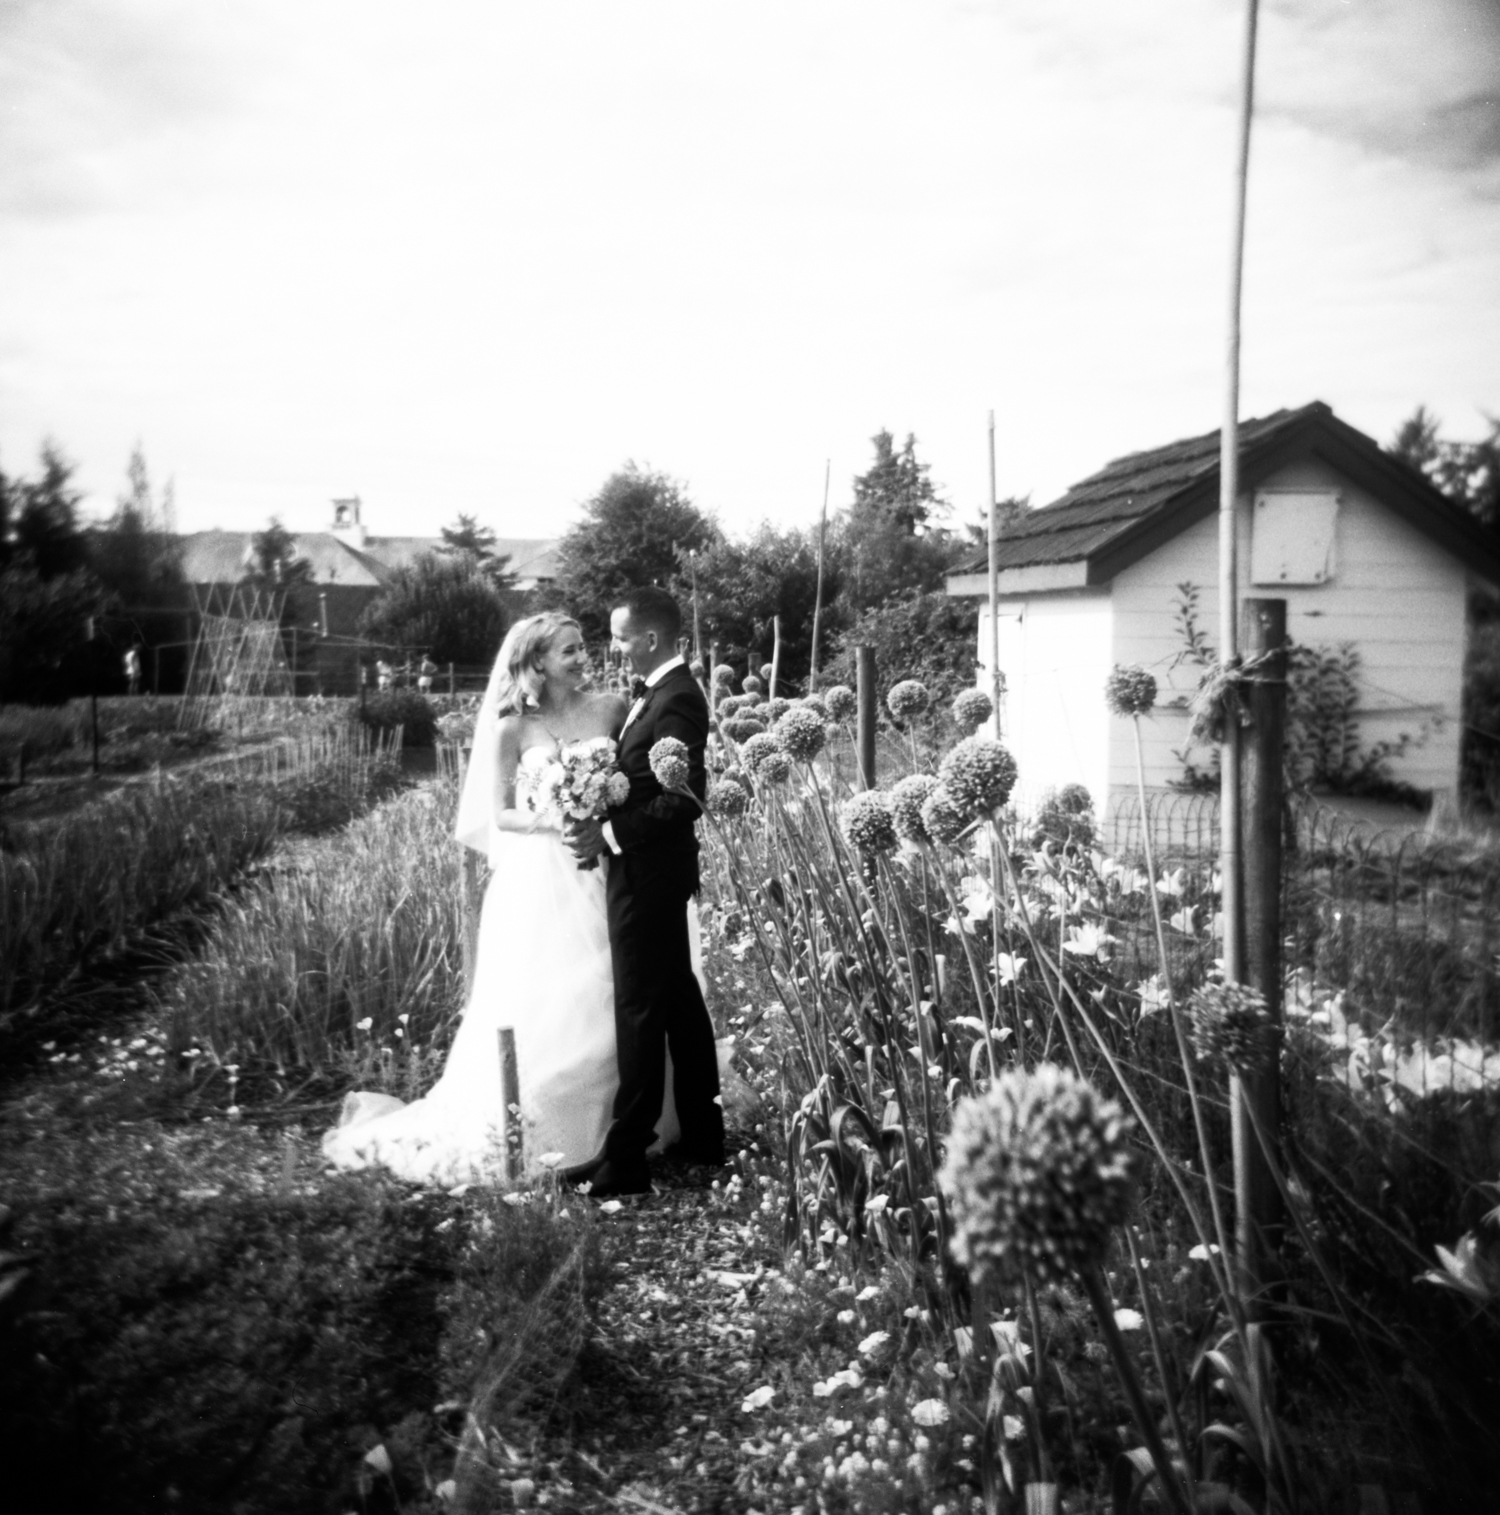 holga wedding photo